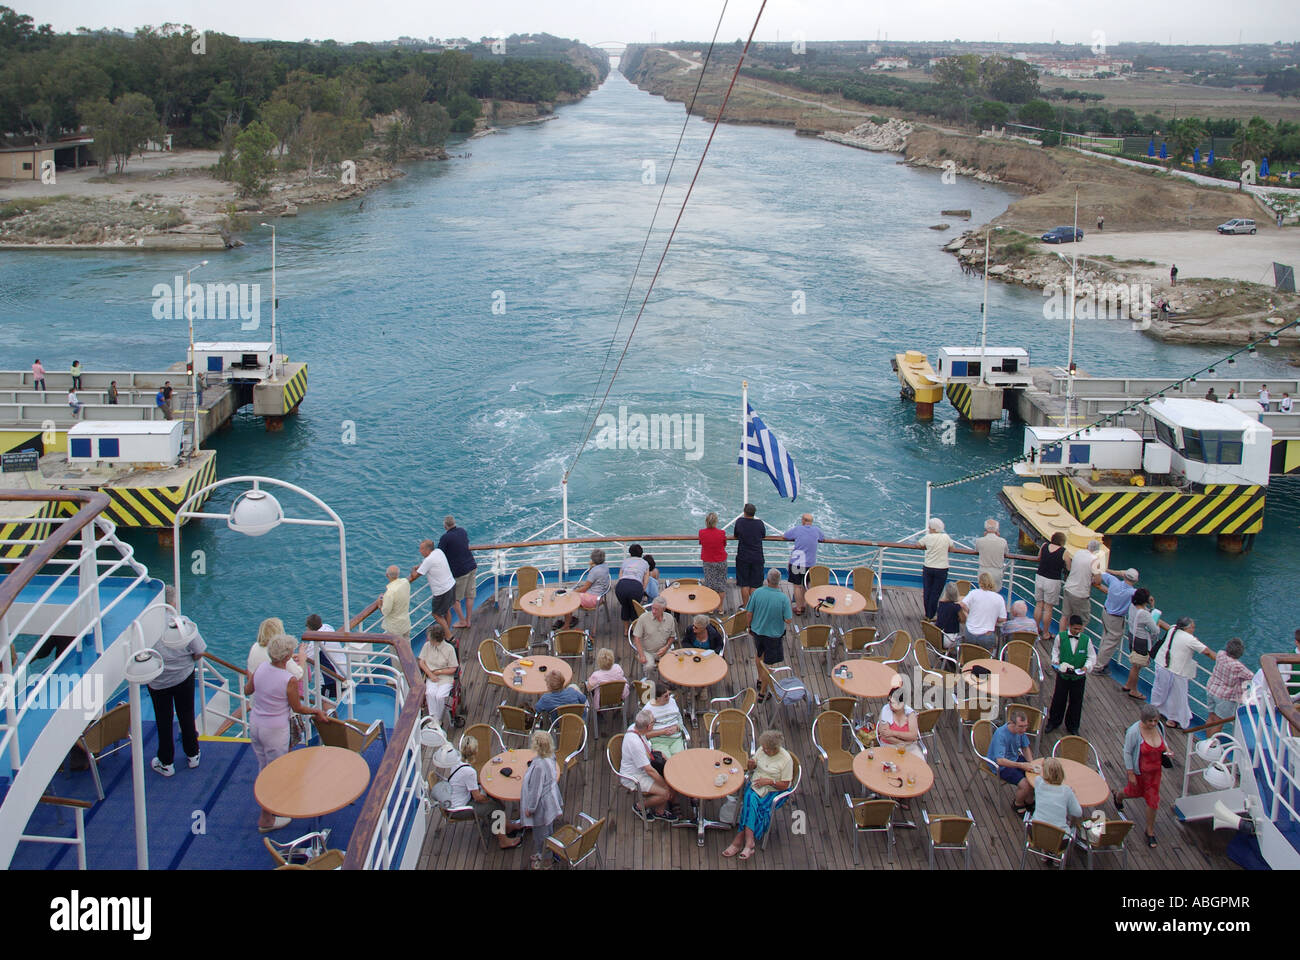 Passengers on stern leisure deck of Cruise ship passing over submersible road bridge across Corinth Canal connects Gulf of Corinth with Saronic Gulf Stock Photo